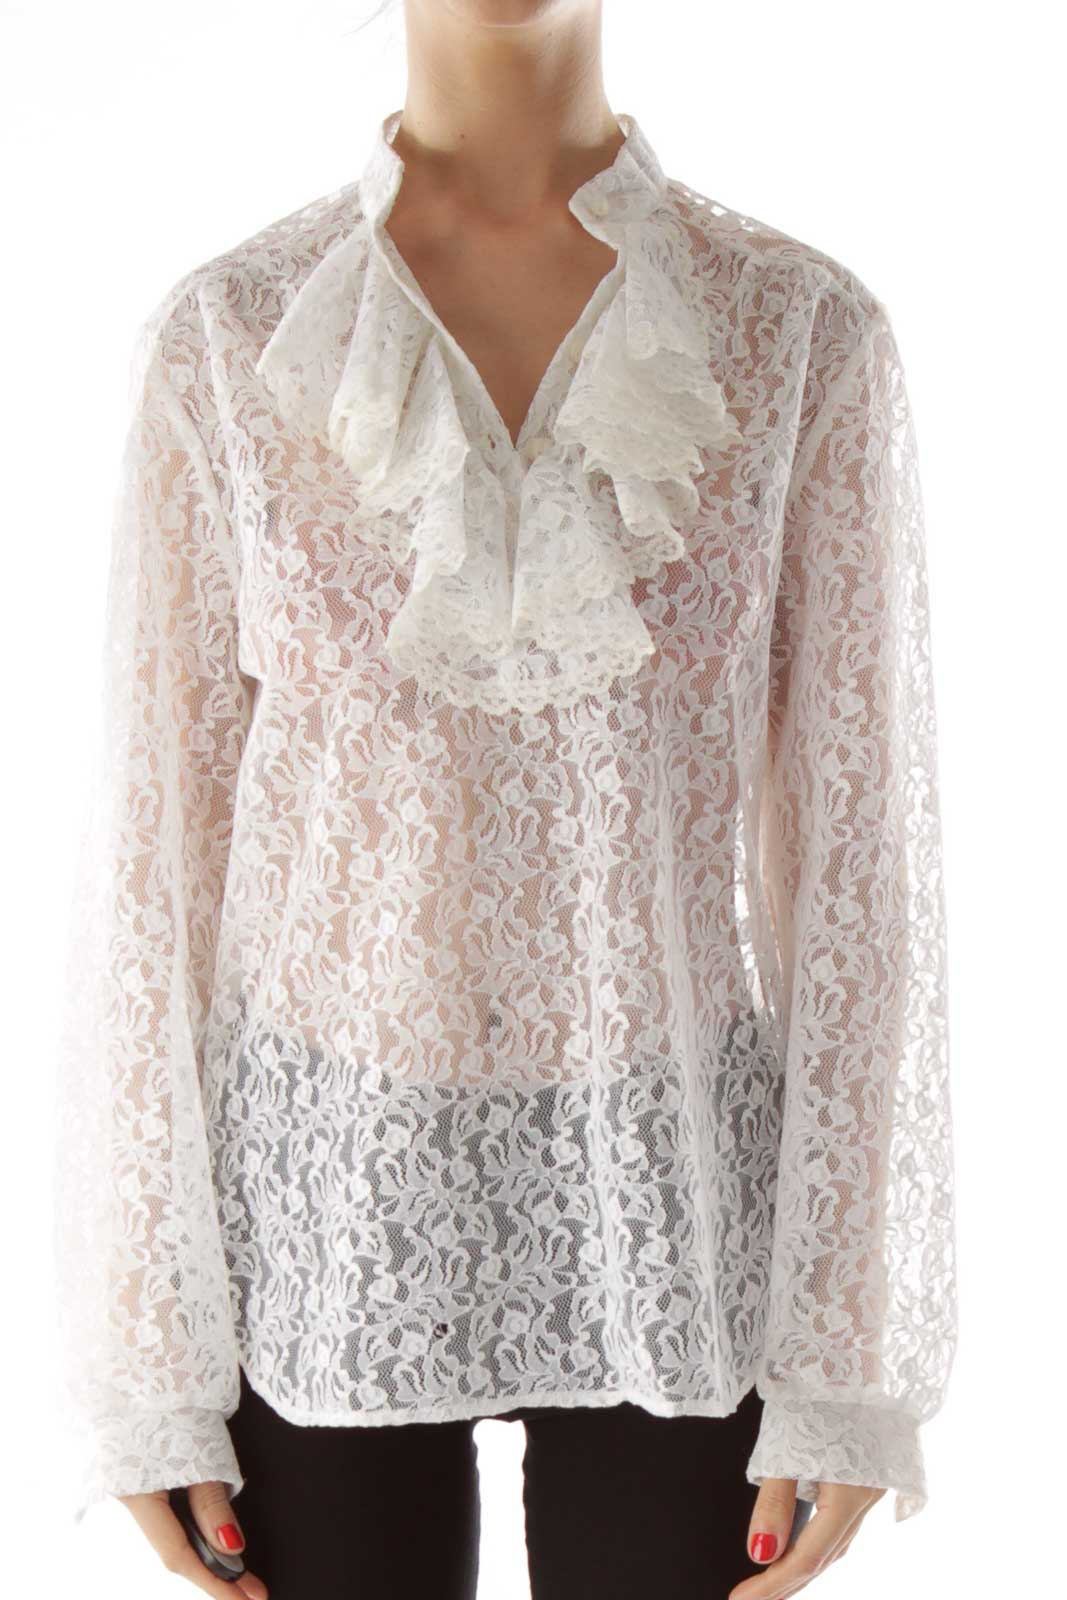 White Ruffled Lace Blouse Front